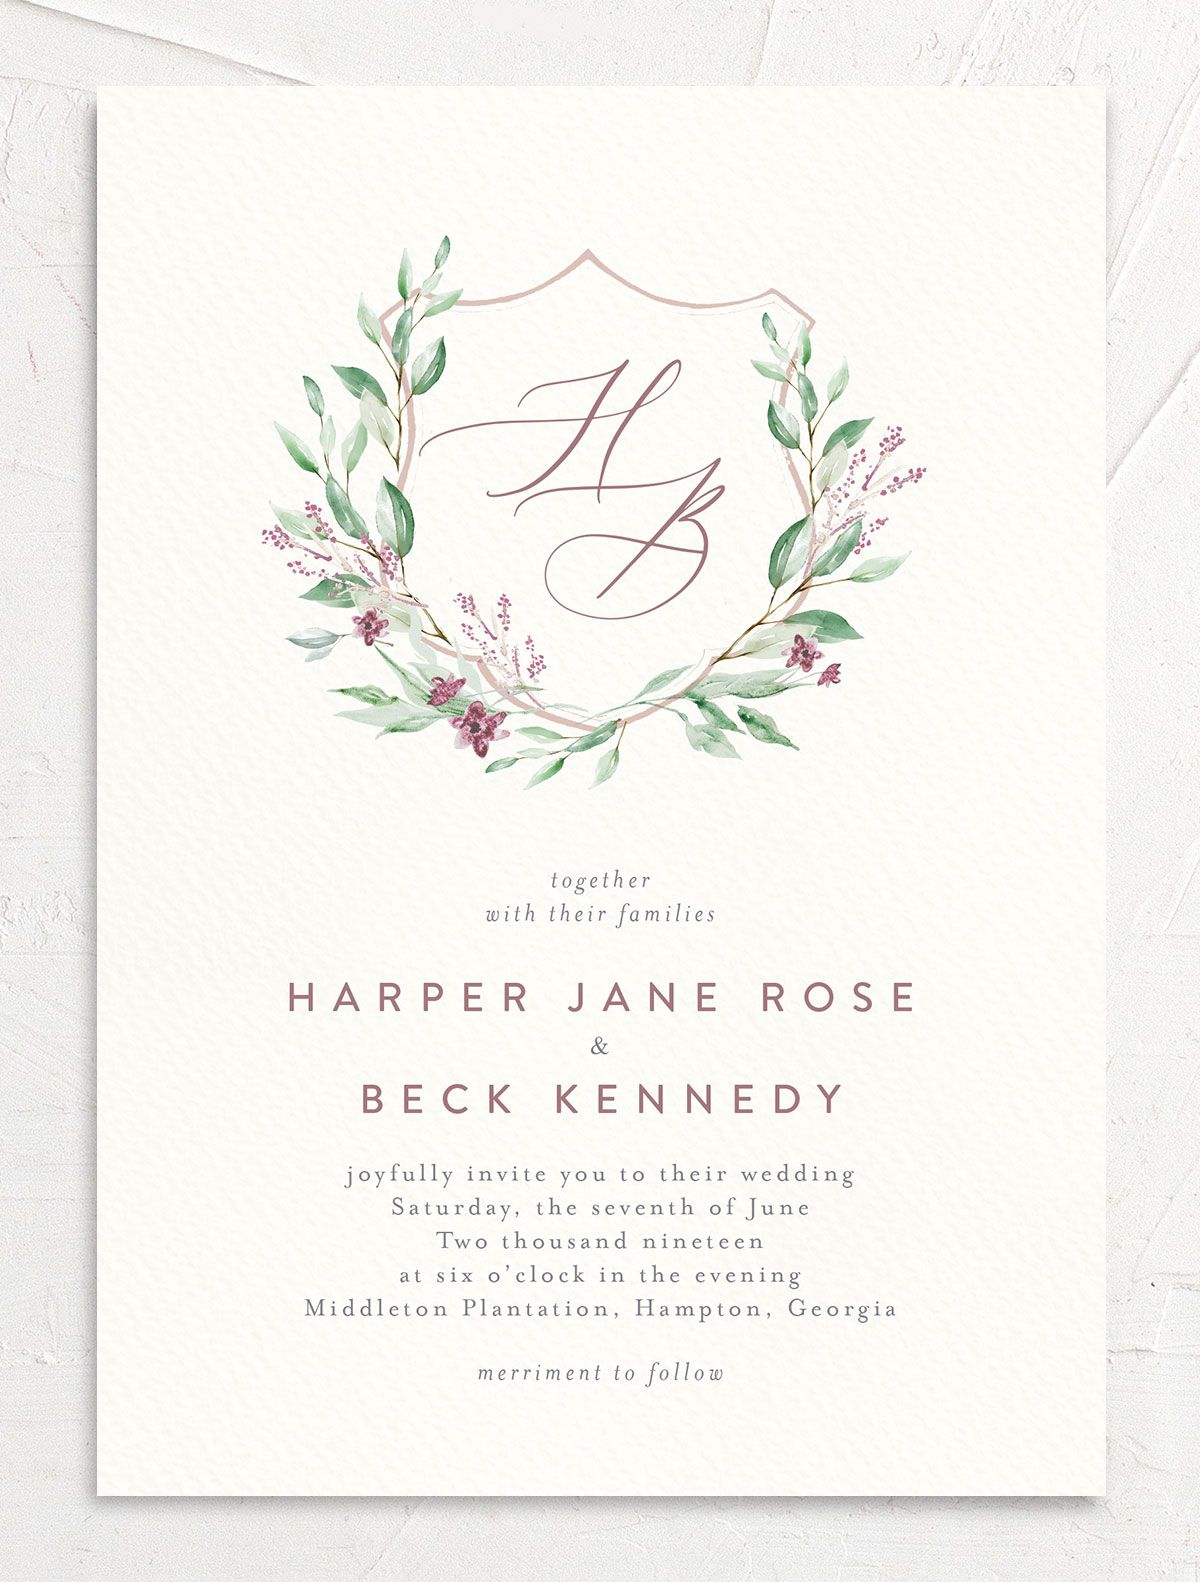 watercolor crest wedding invites in pink